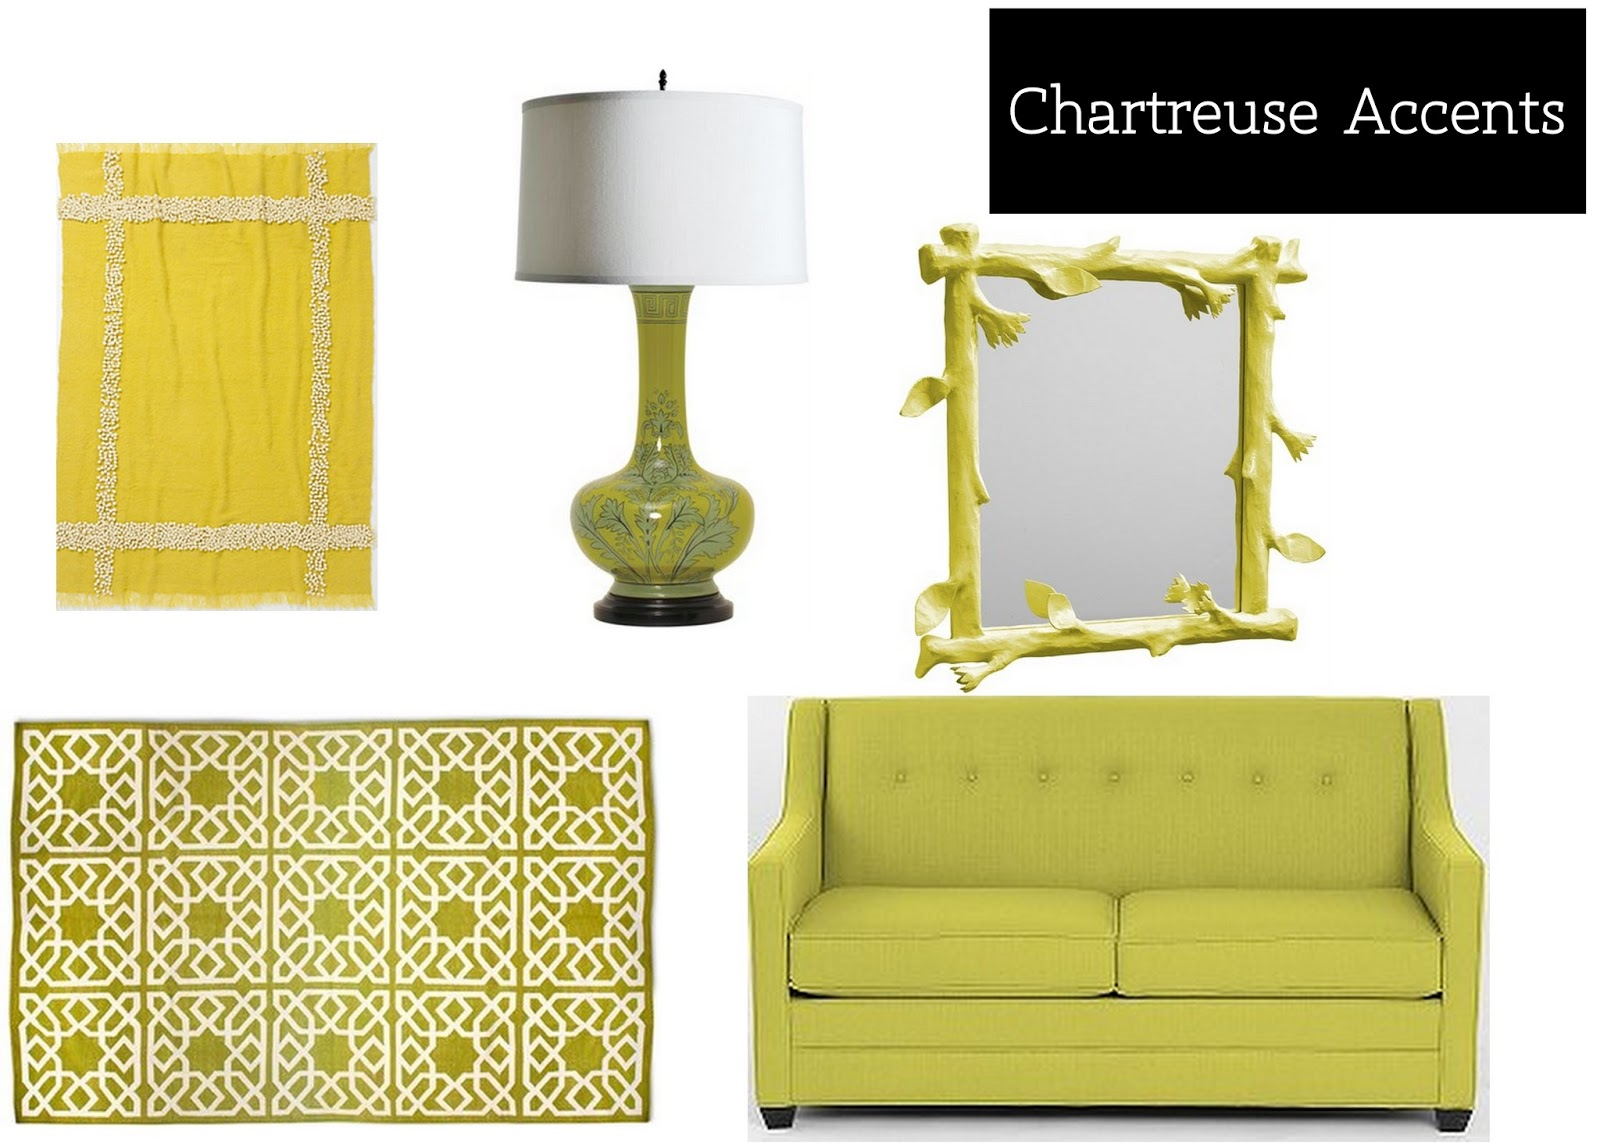 Sadie Stella Monday Musings Chartreuse Accents